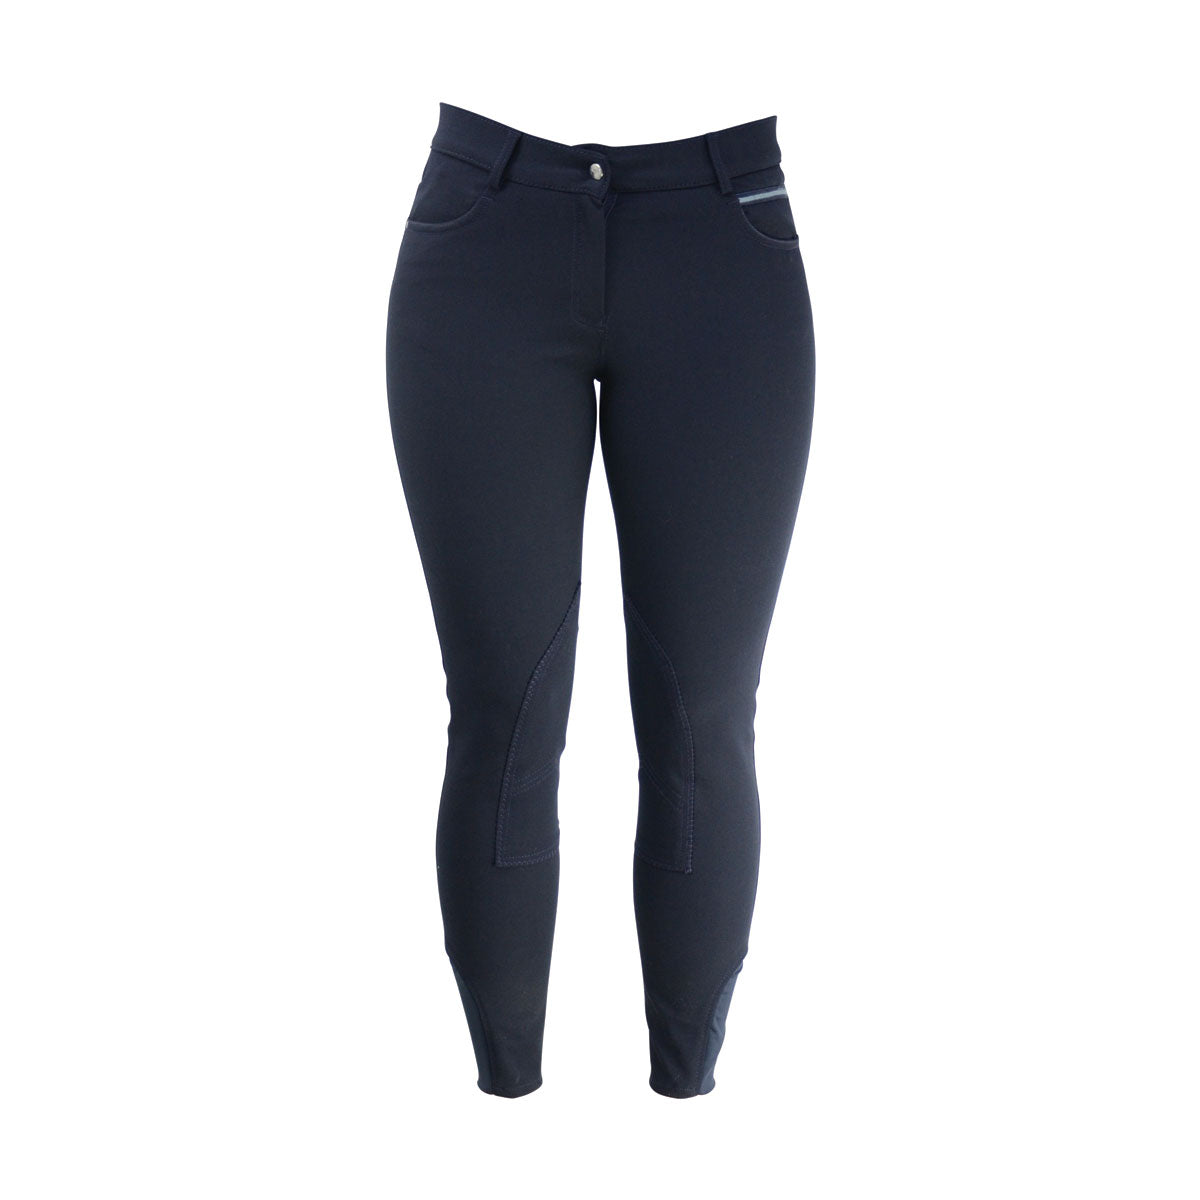 HyRIDER Signature Breeches